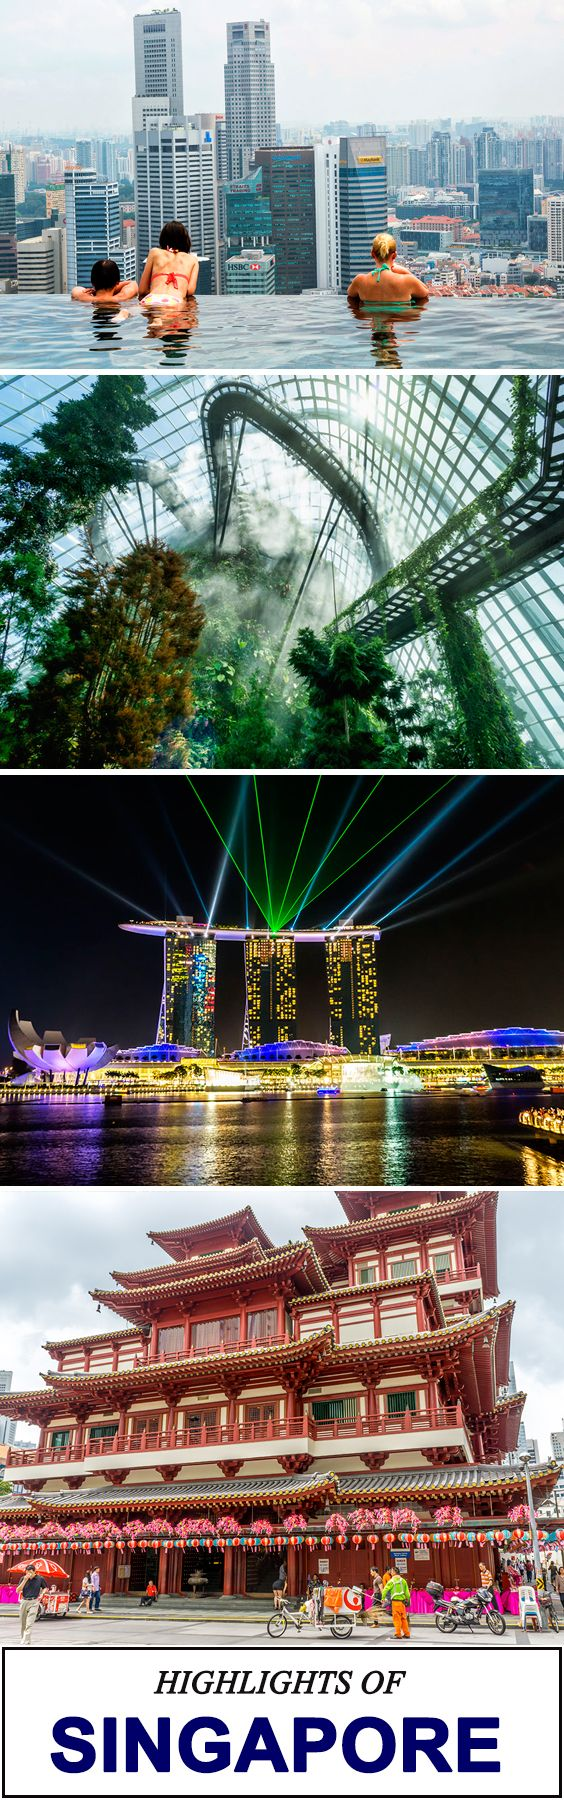 The best things to do in Singapore!   See my highlights from 3 days of wandering all around Singapore's attractions. Marina Bay Sands infinity pool, Gardens by the Bay, Marina Bay and more.